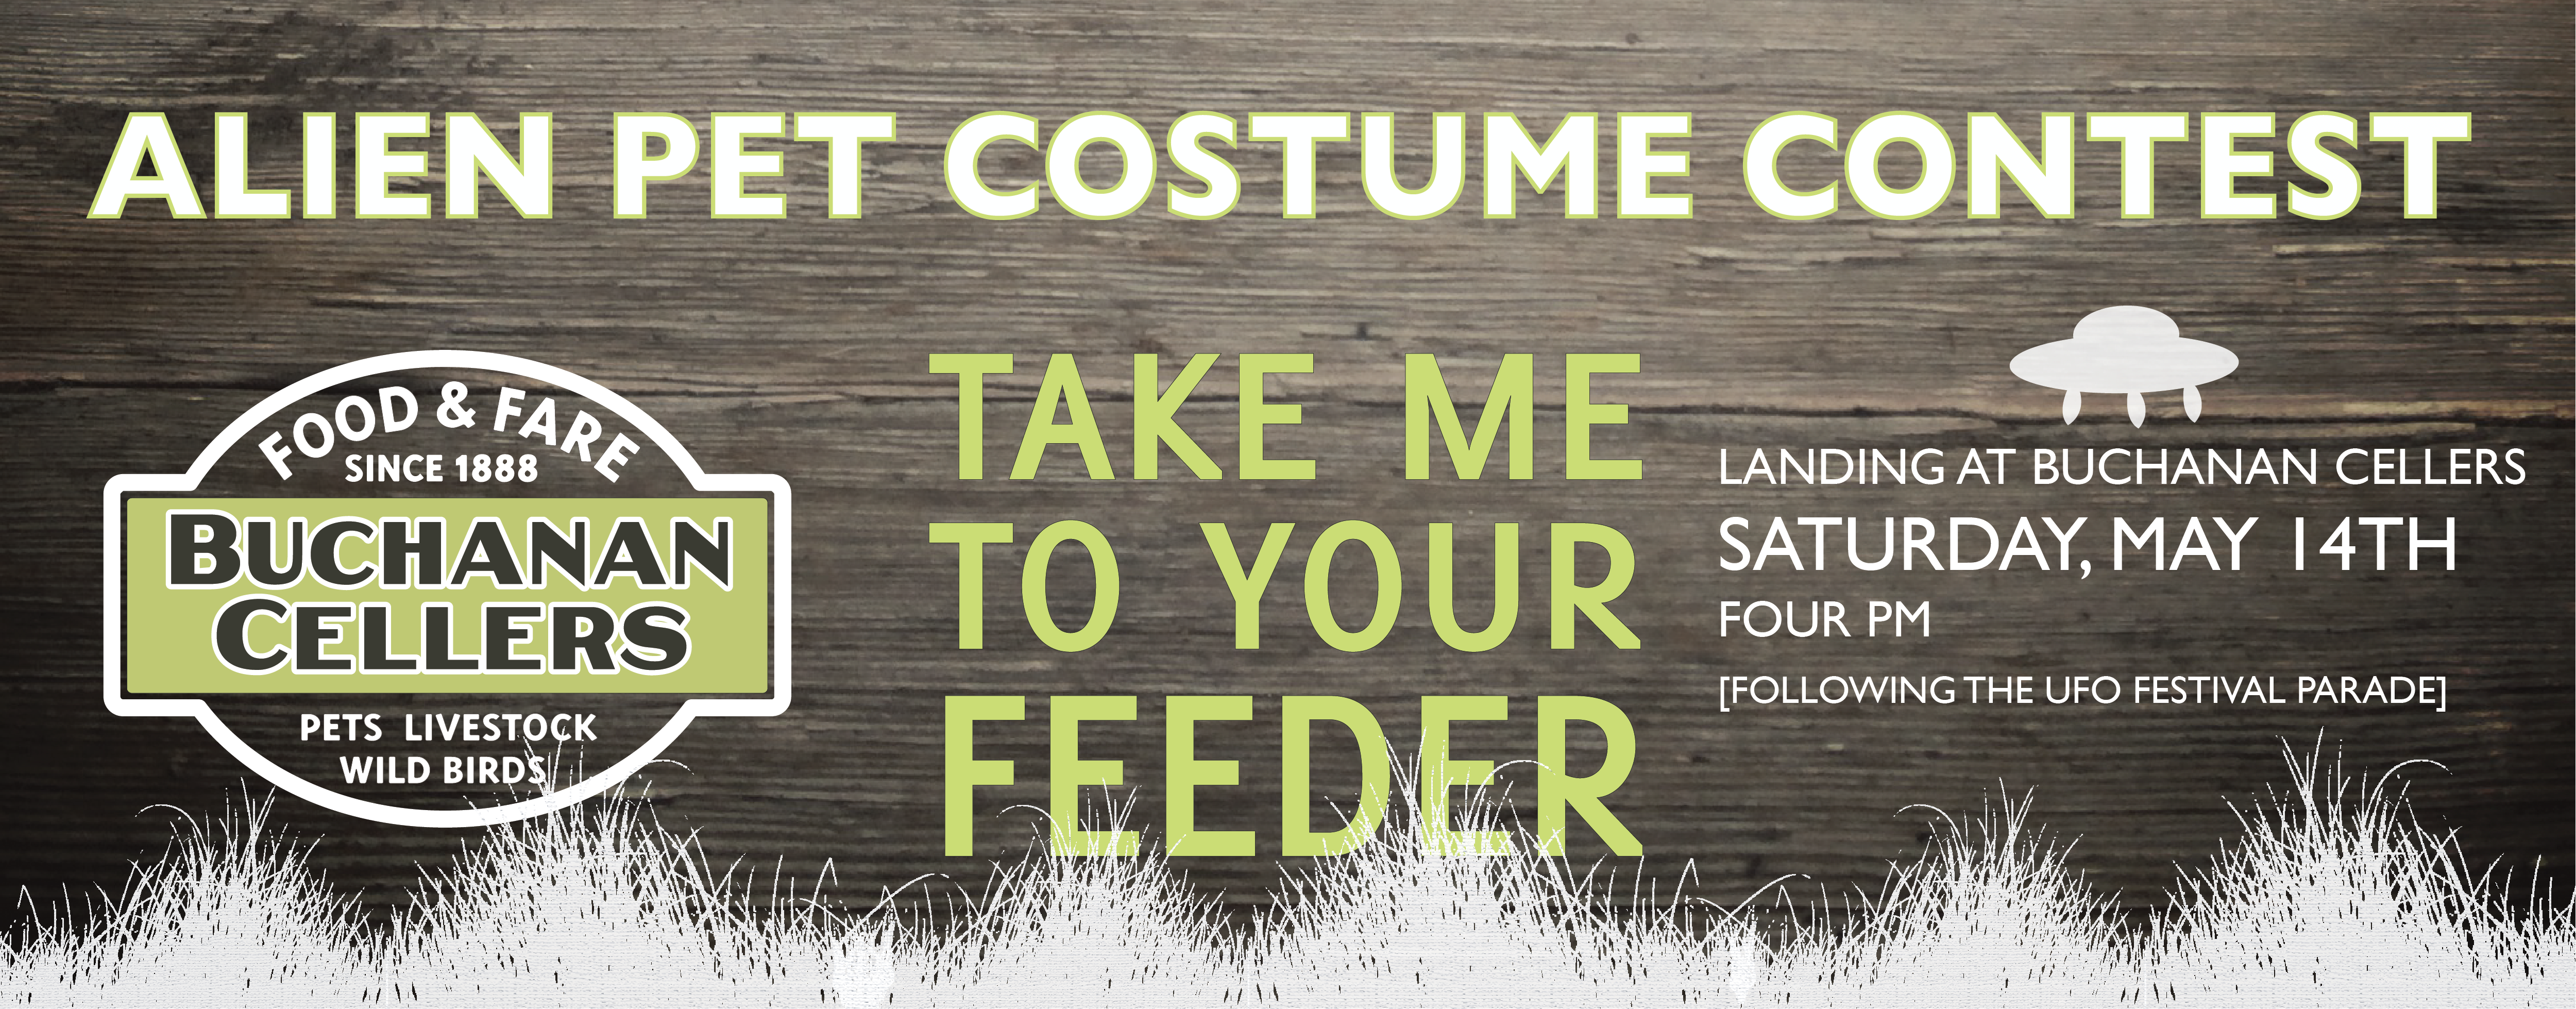 It's time to start working on your pet's costume! The aliens are landing in McMinnville soon!